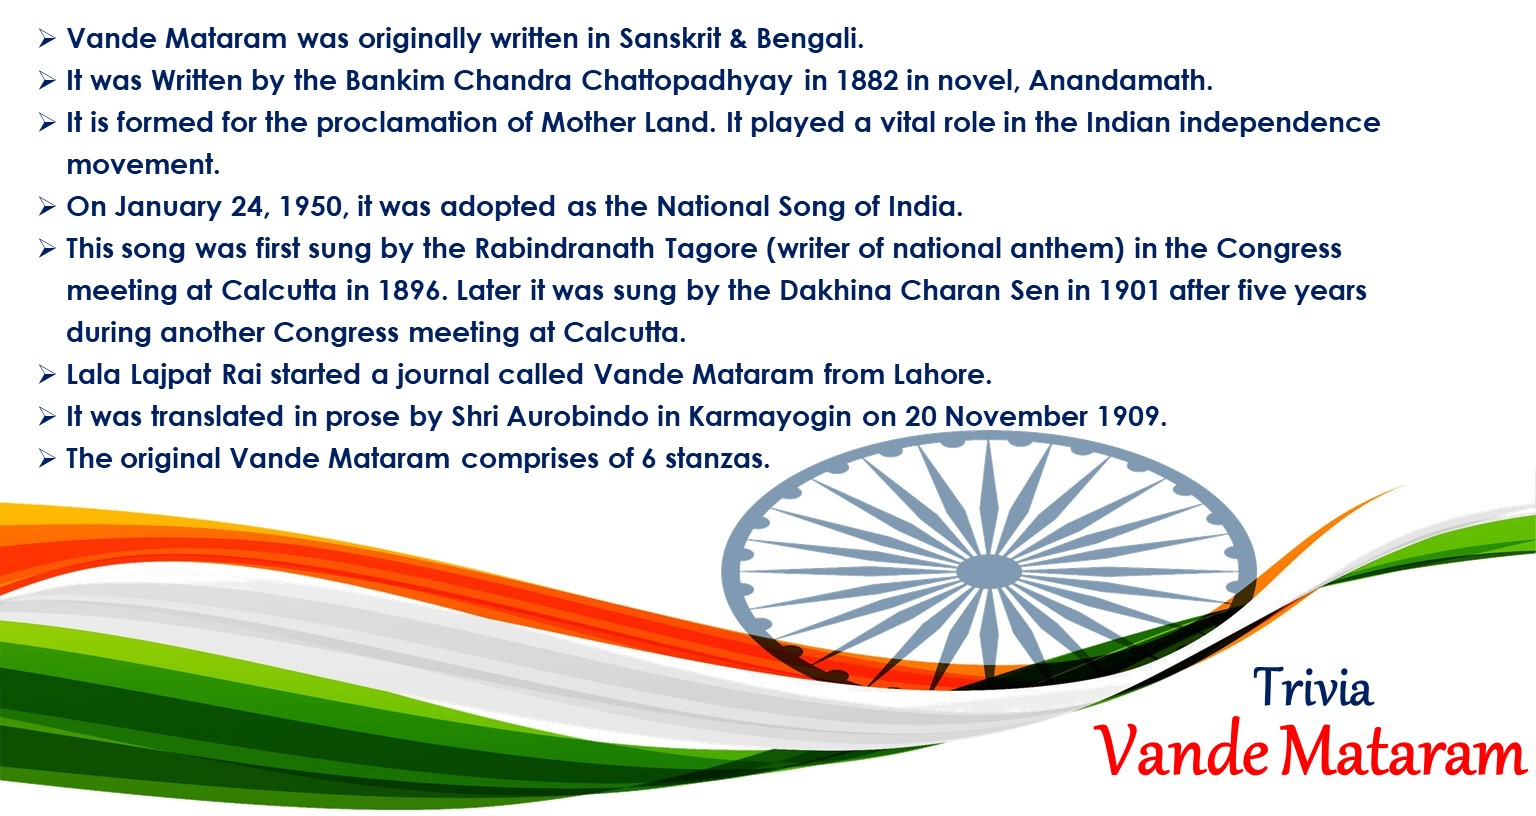 FACTS OF VANDE MATARAM